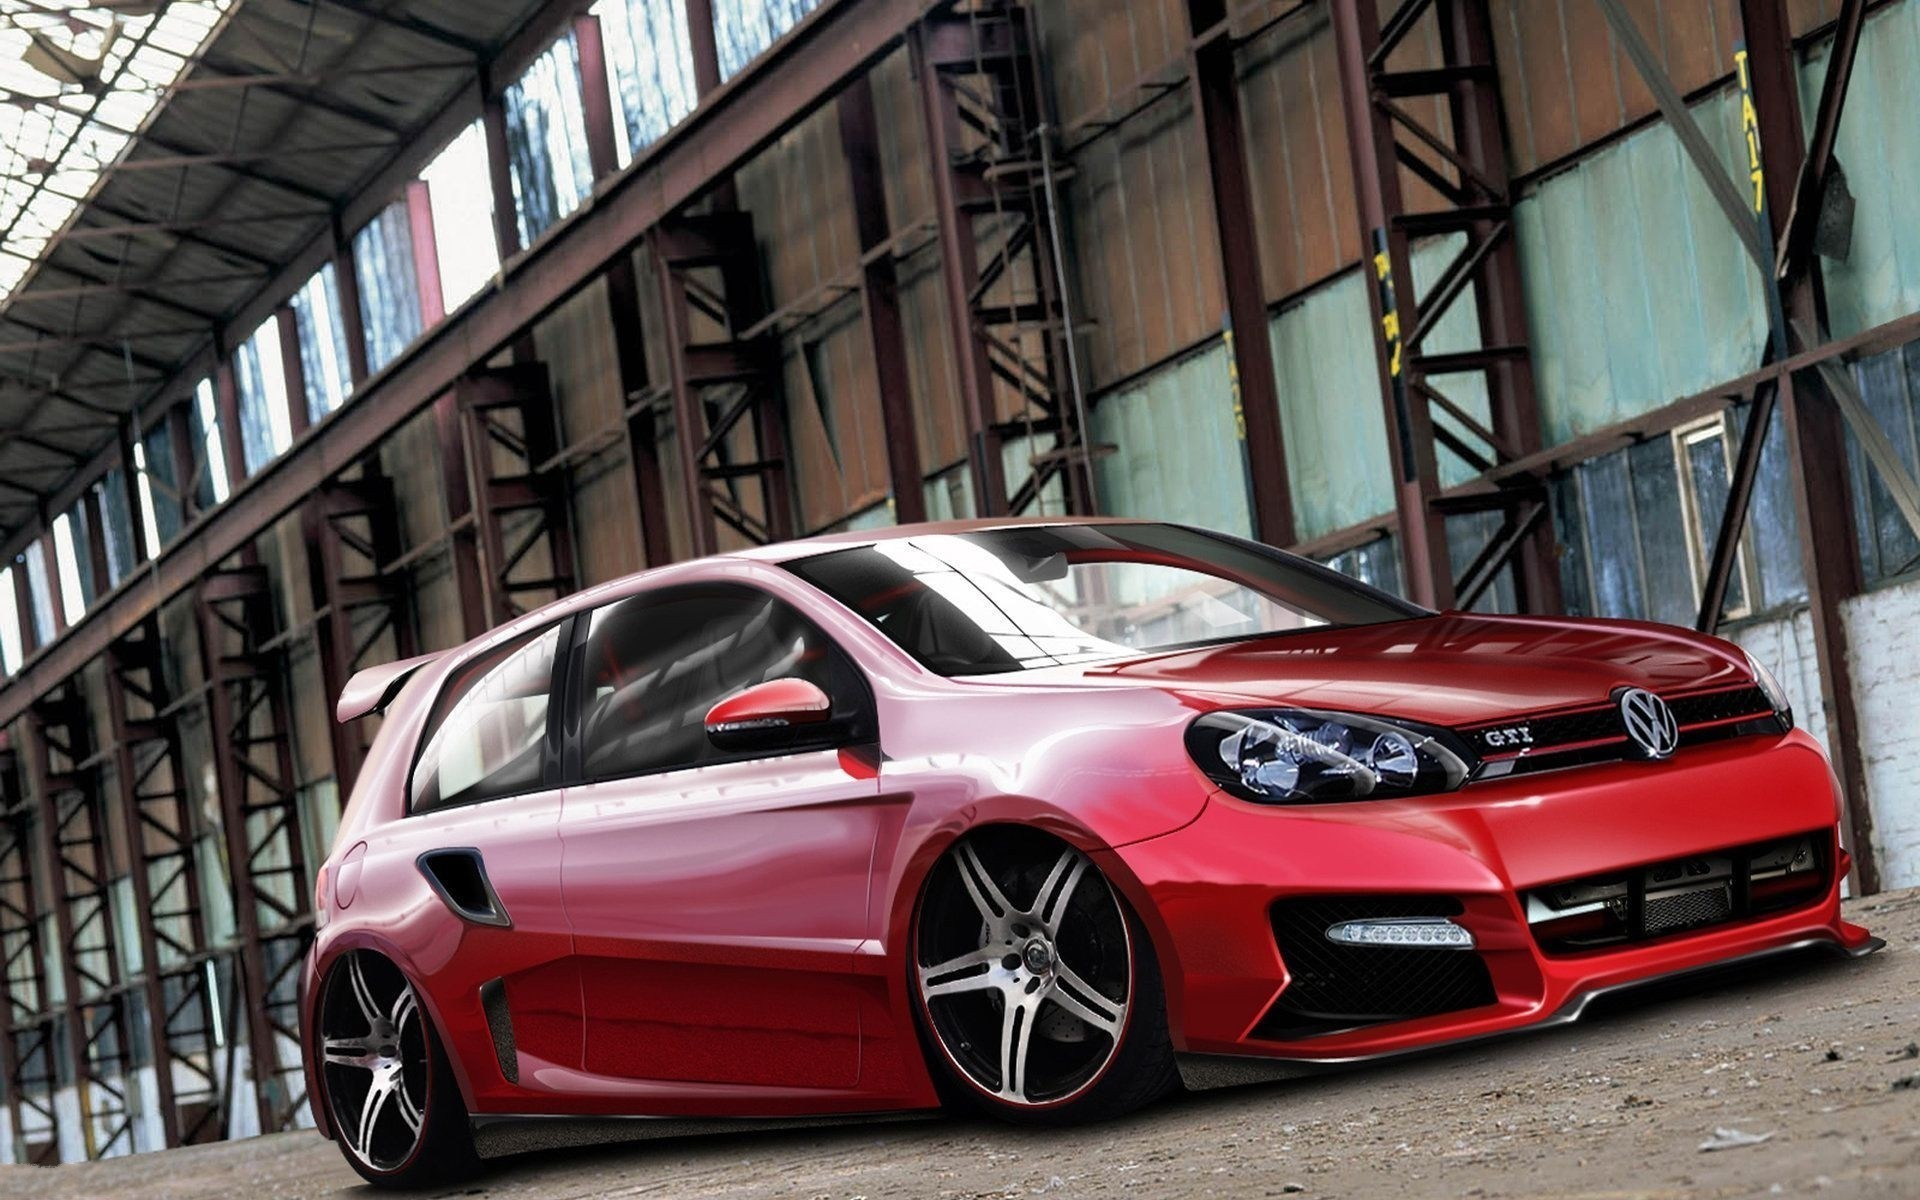 Res: 1920x1200, Cars Tuning Volkswagen Golf Gti Wallpapers Vw